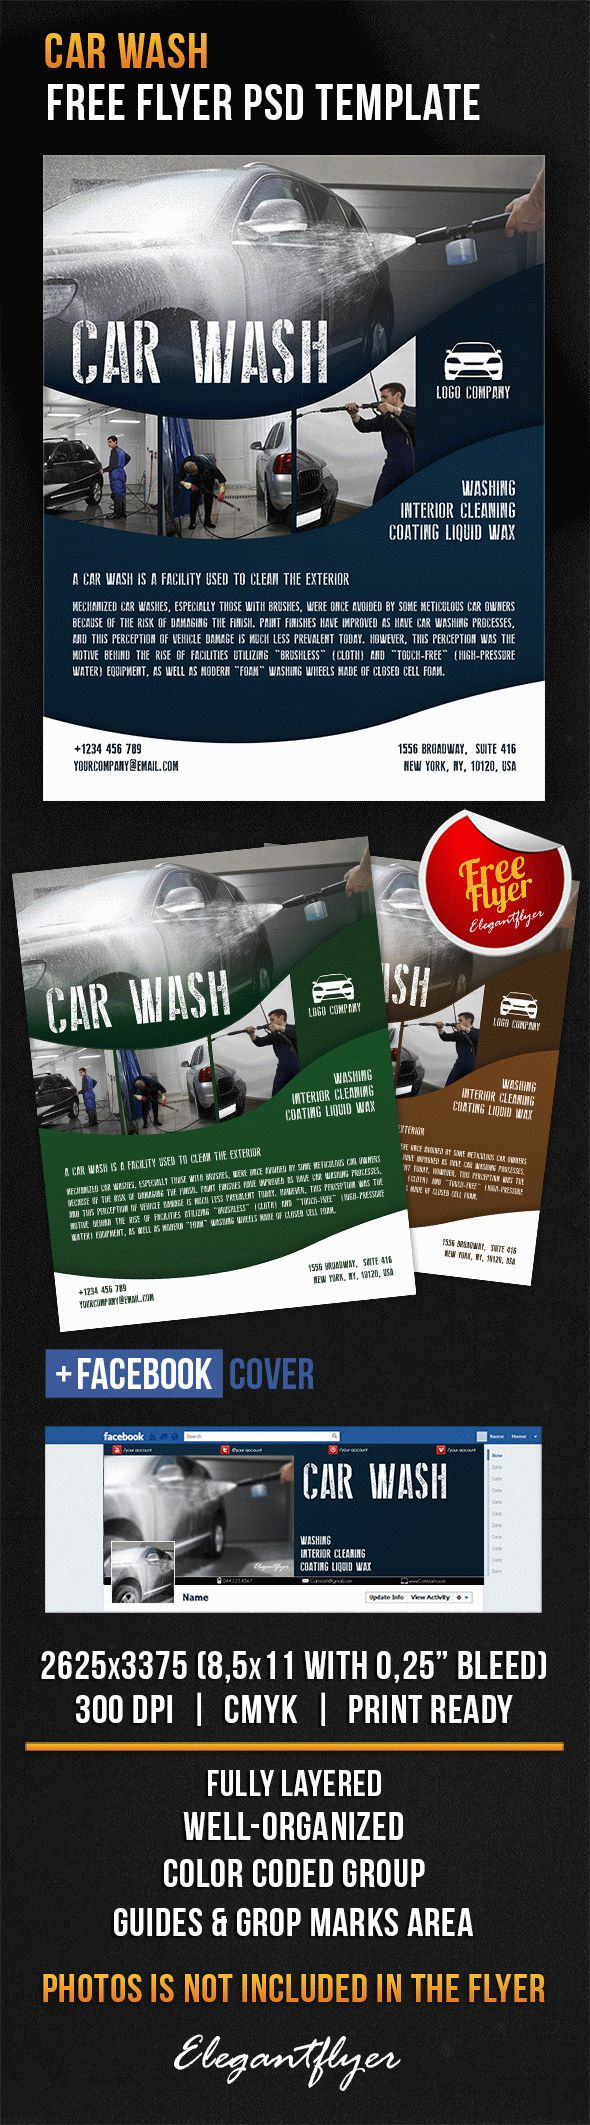 car wash free flyer psd template by elegantflyer. Black Bedroom Furniture Sets. Home Design Ideas